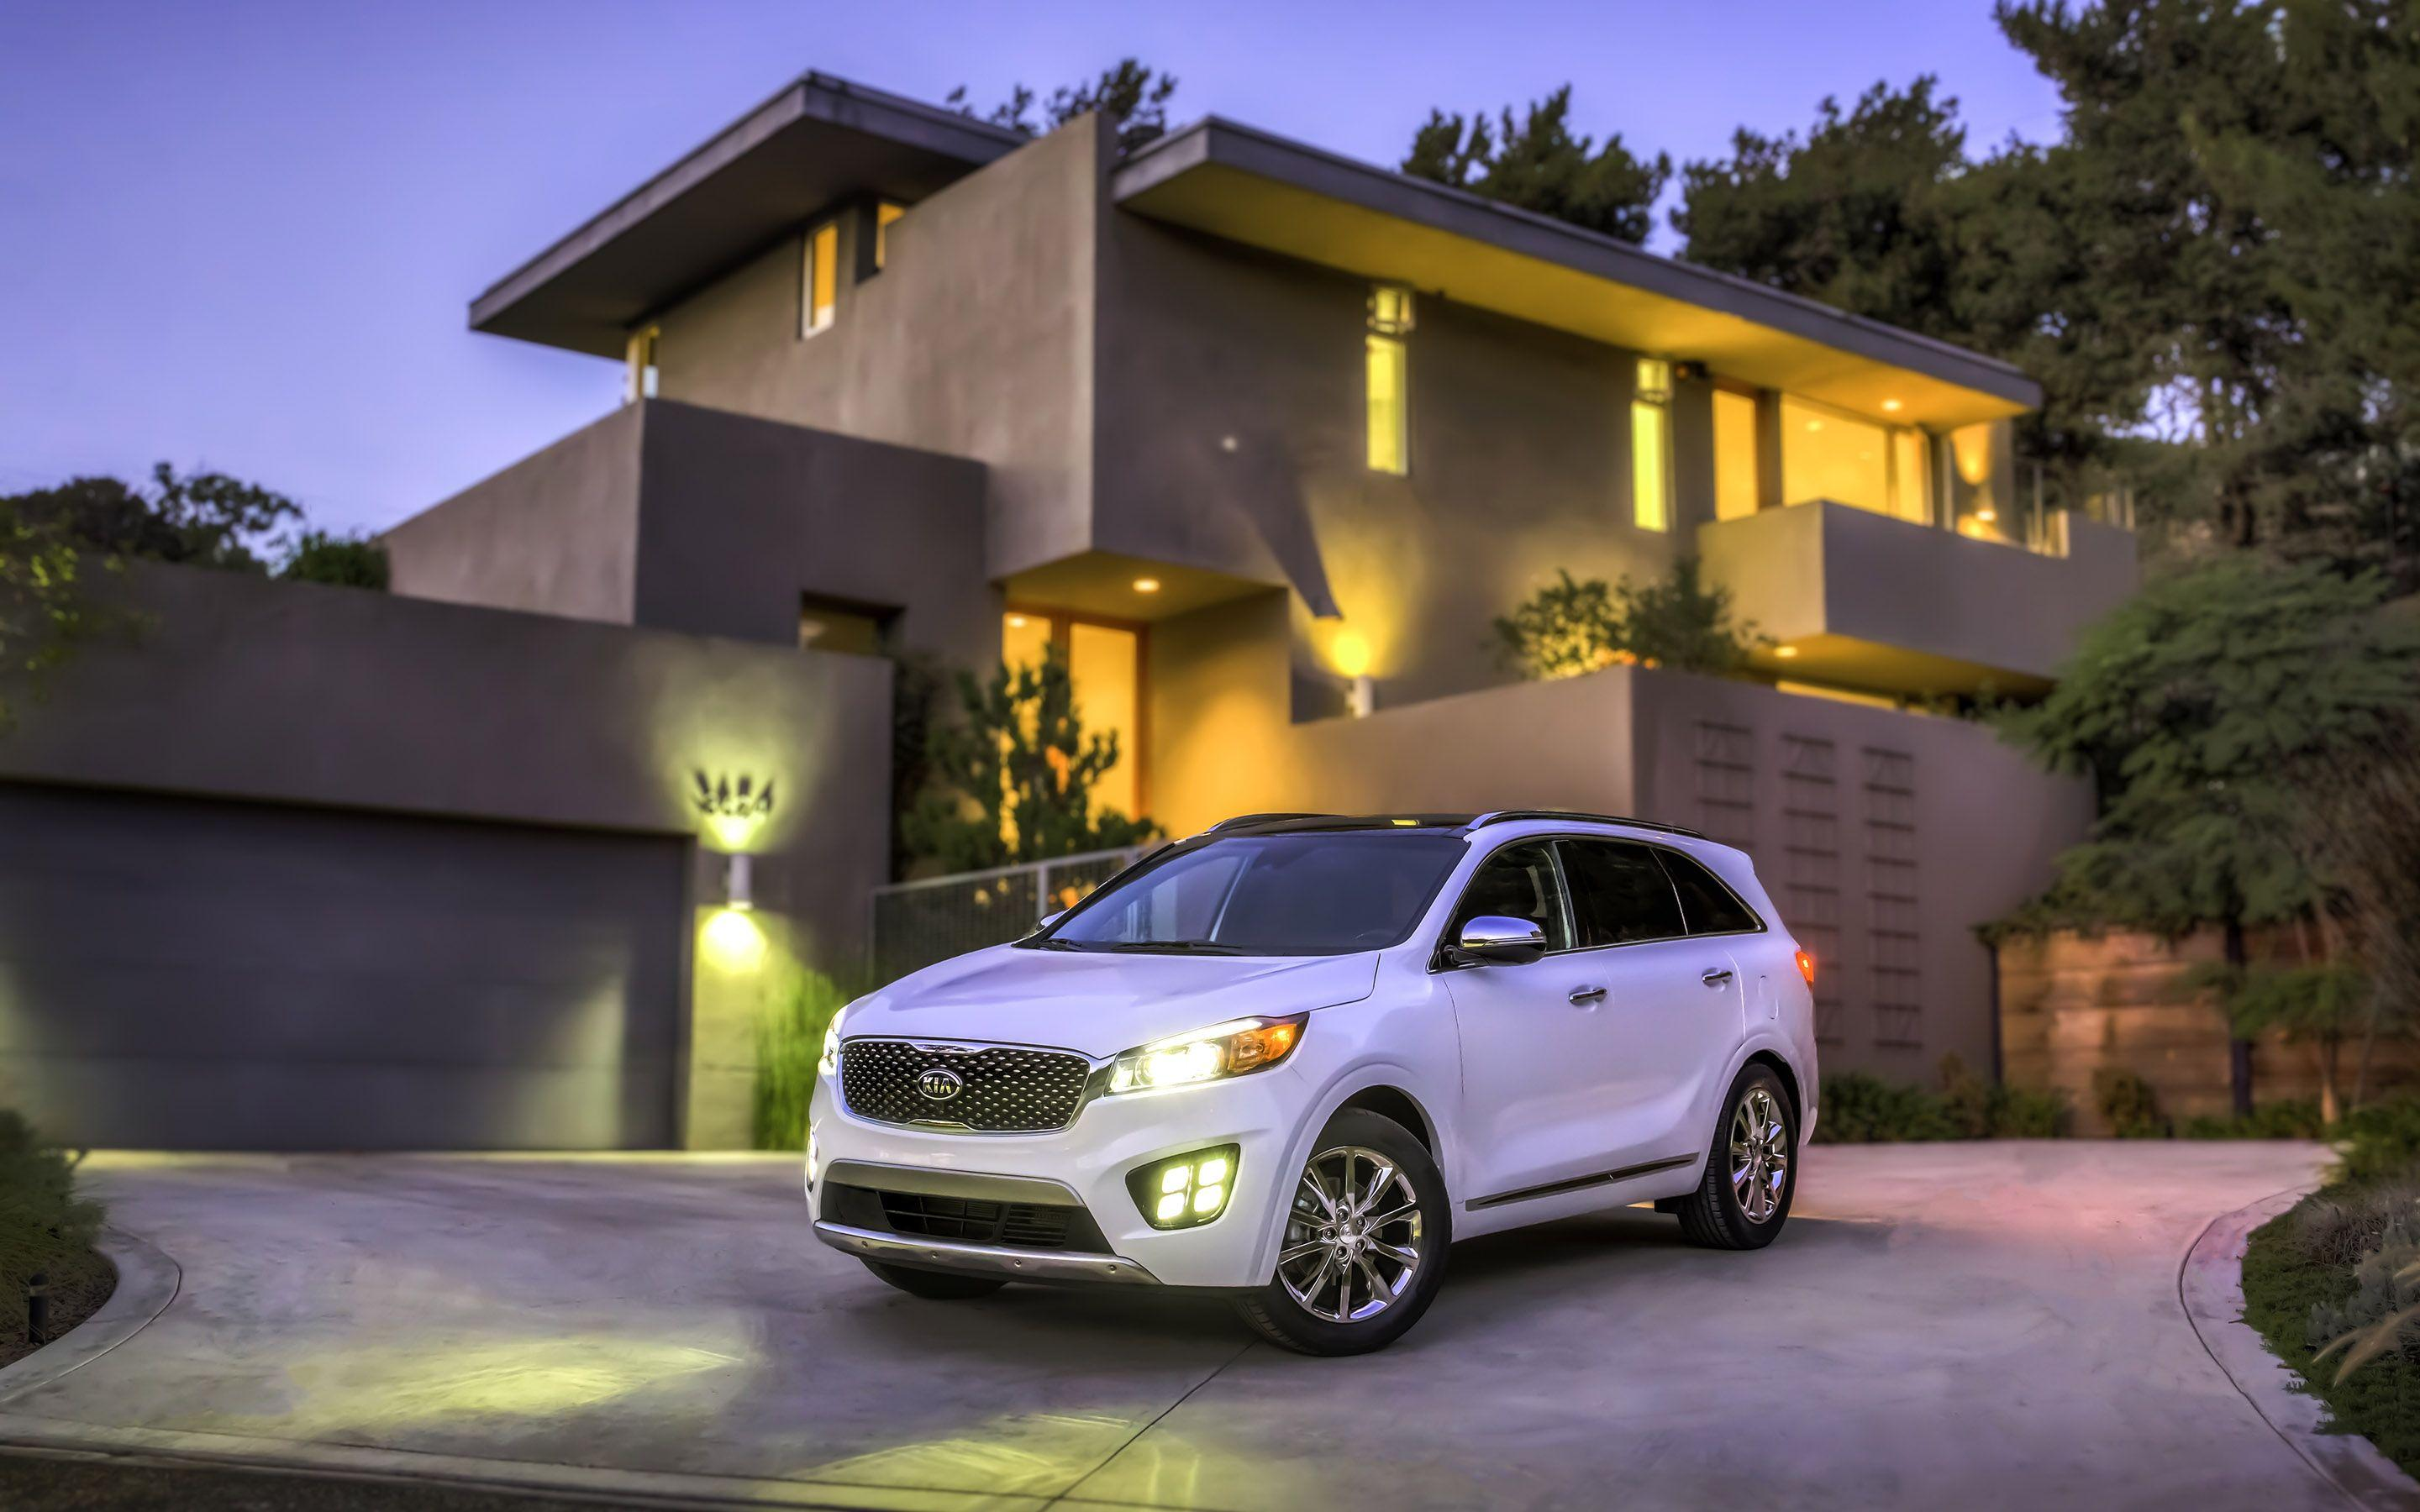 KIA SORENTO Partilhado de: https://wallpaperspal/wp